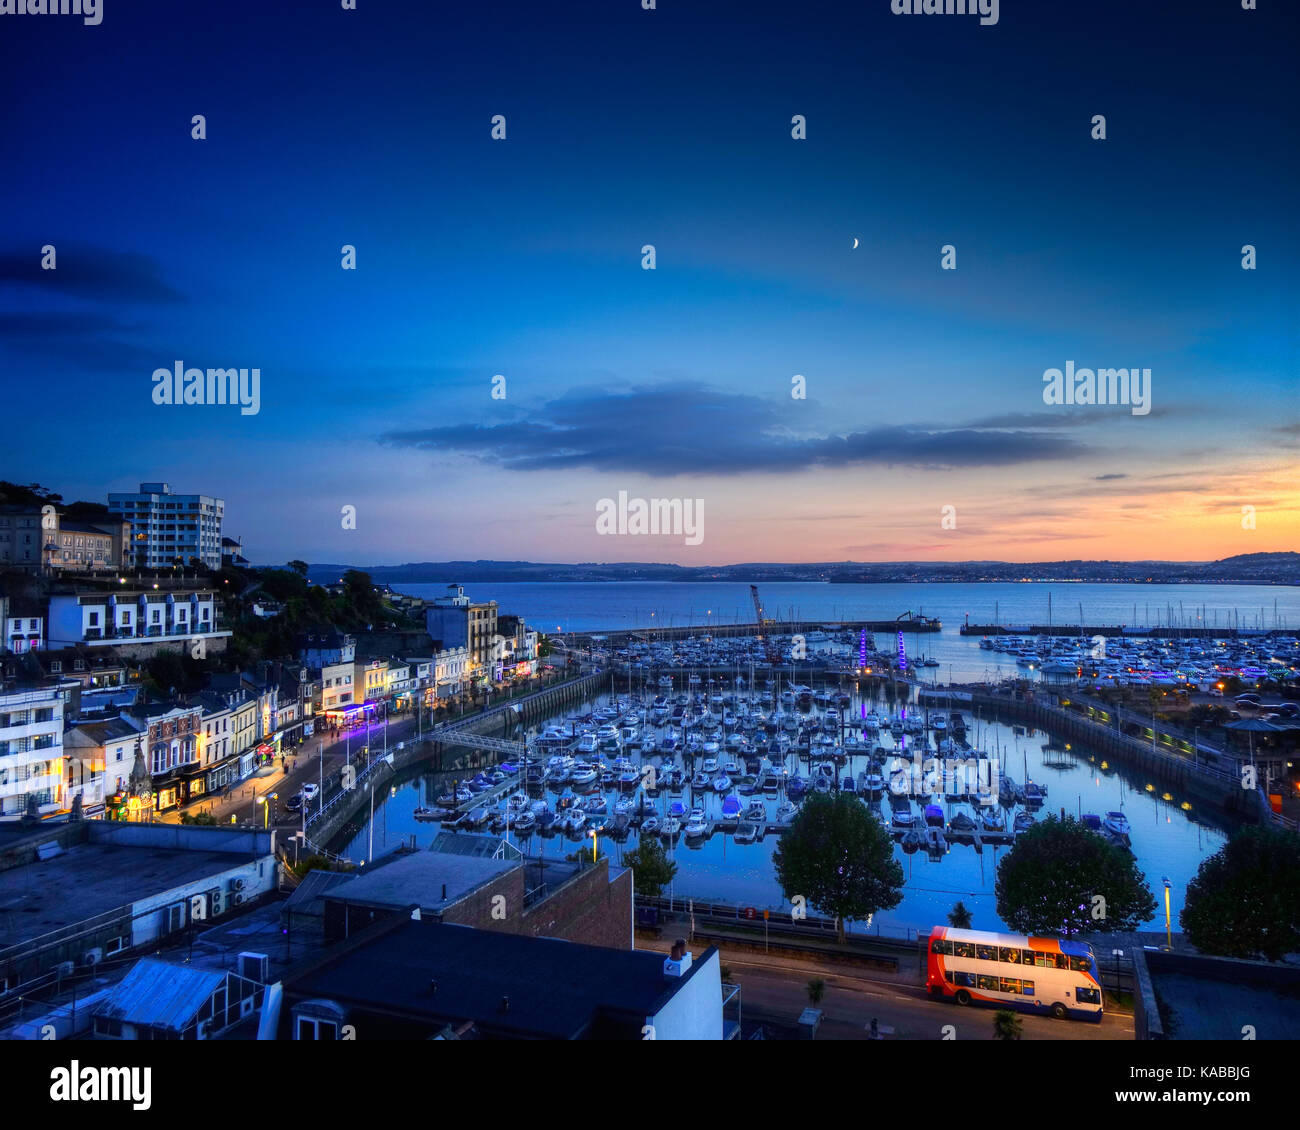 Go - Devon : le port de Torquay, la nuit (image hdr) Photo Stock